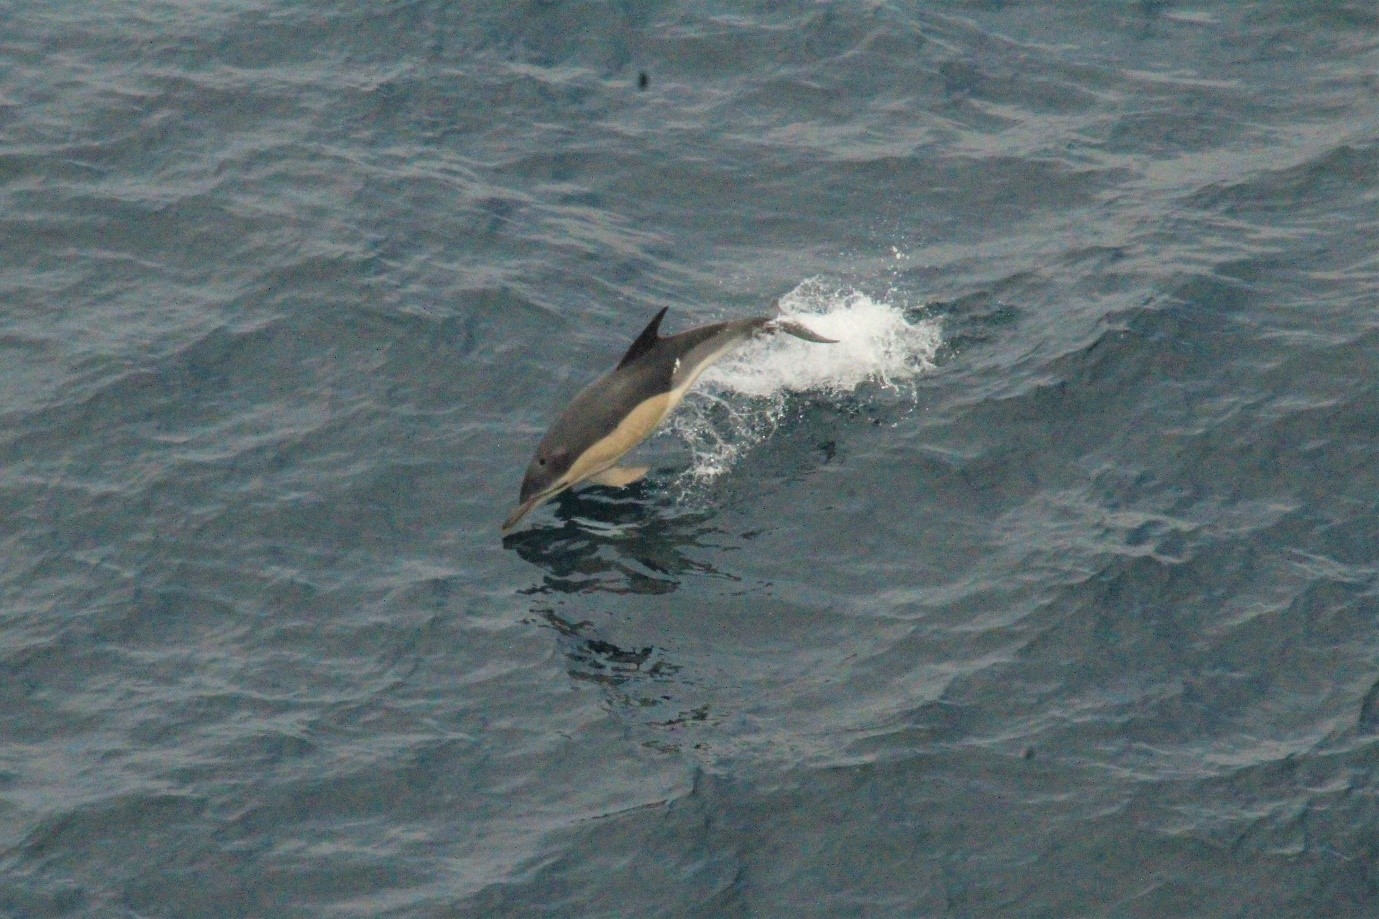 A library image of common dolphins